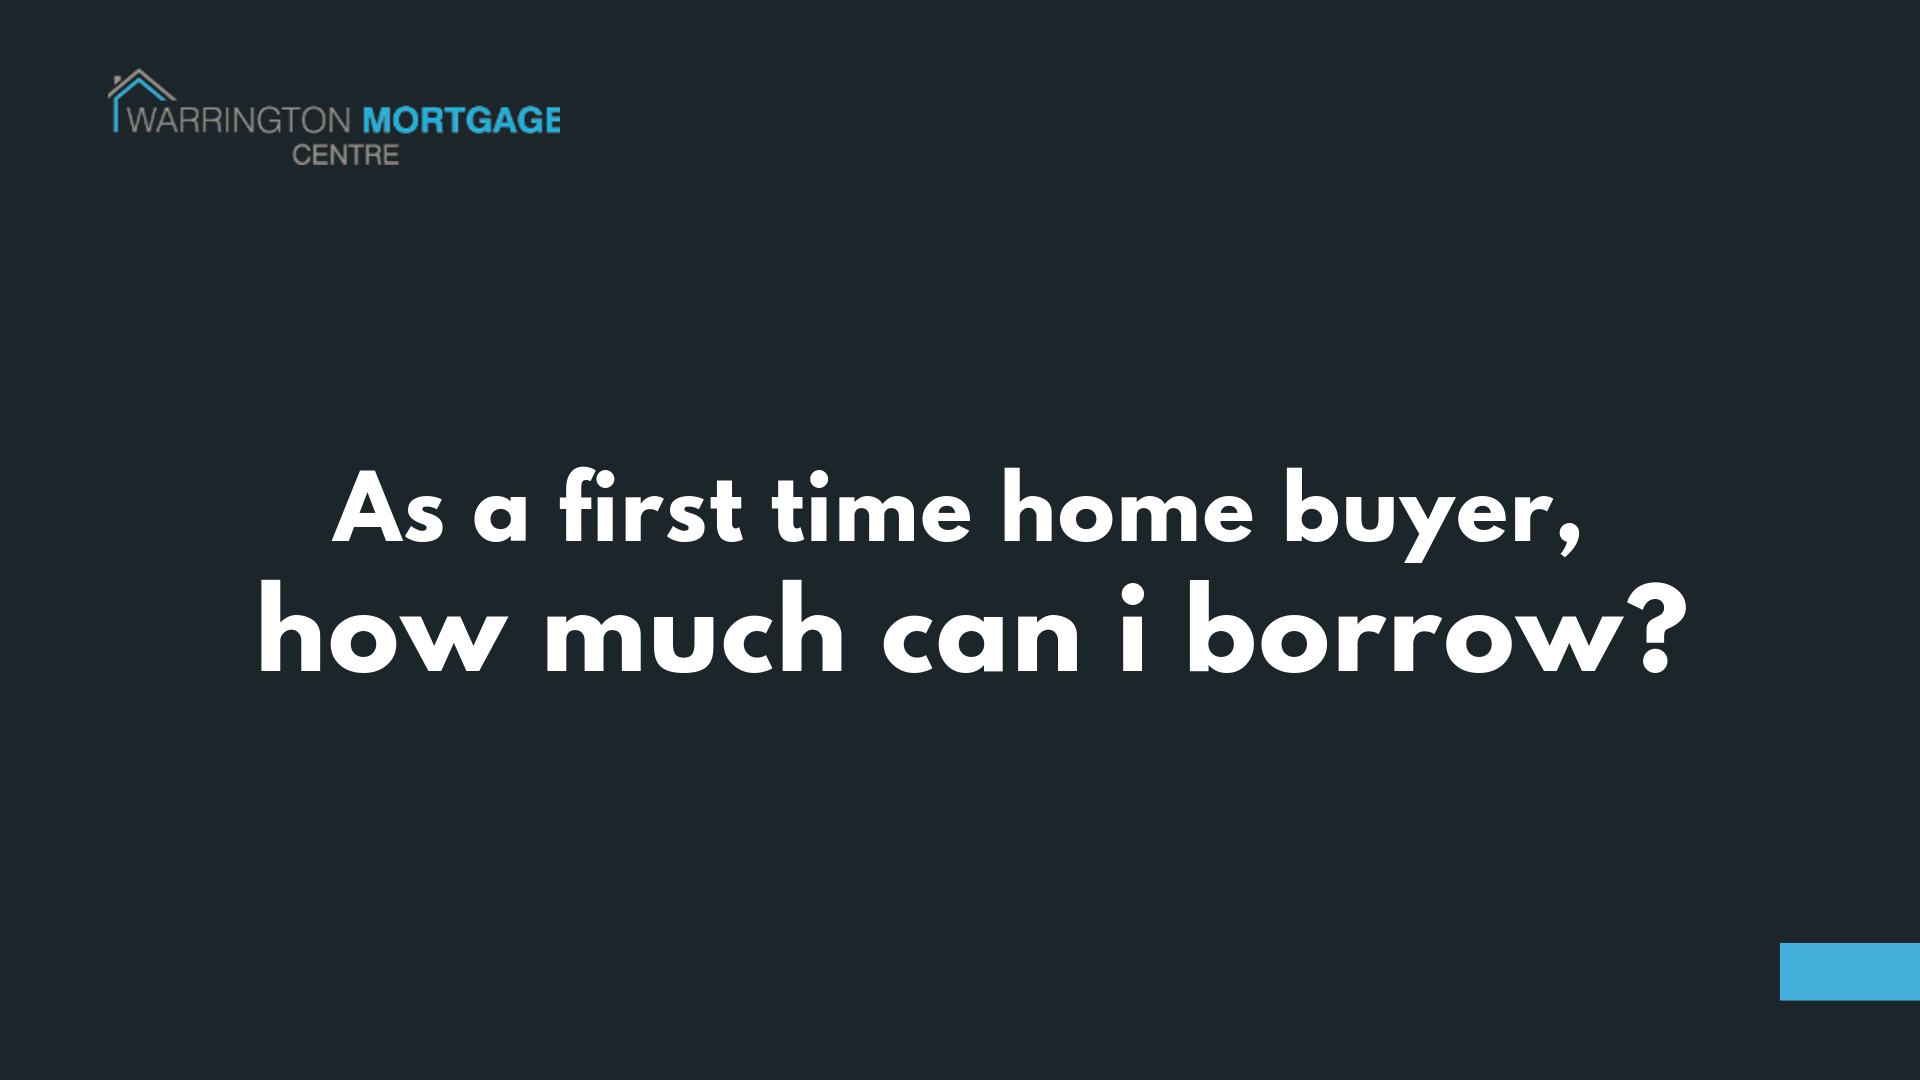 As a first time home buyer, how much can I borrow?